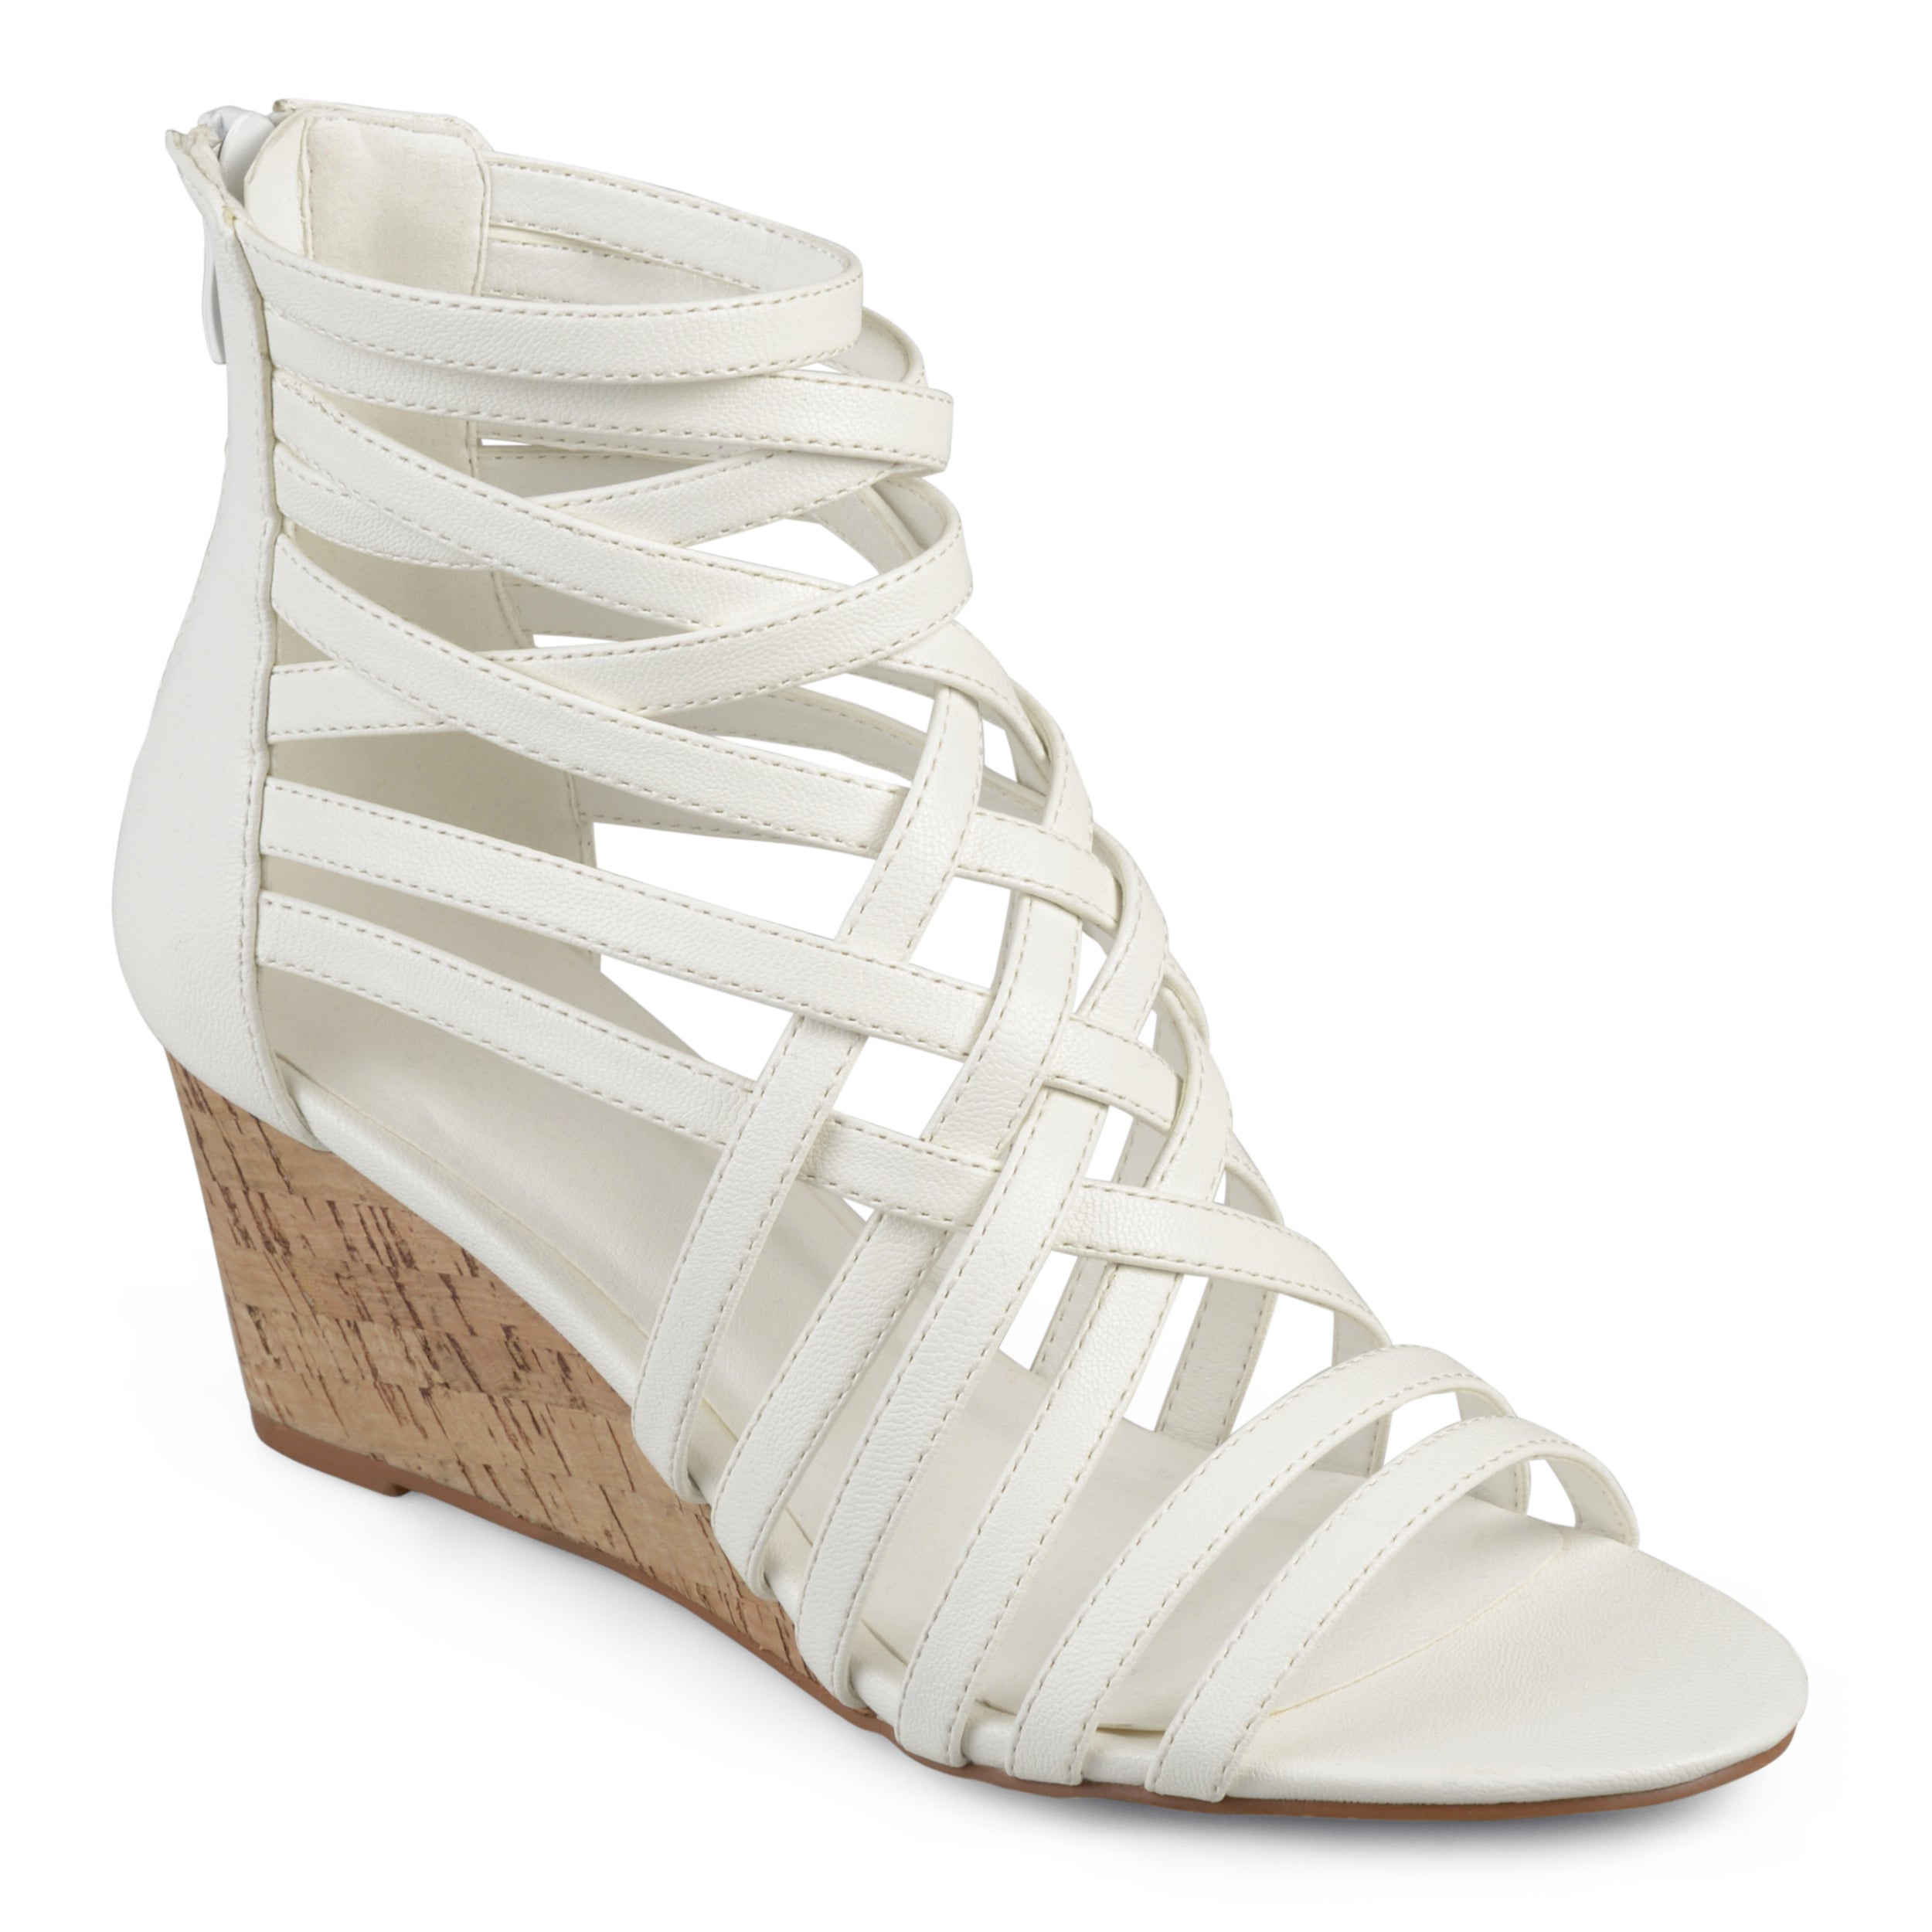 a56817c9264 JOURNEE Collection Women's Strappy Brown Faux Leather Wedges Shoes ...